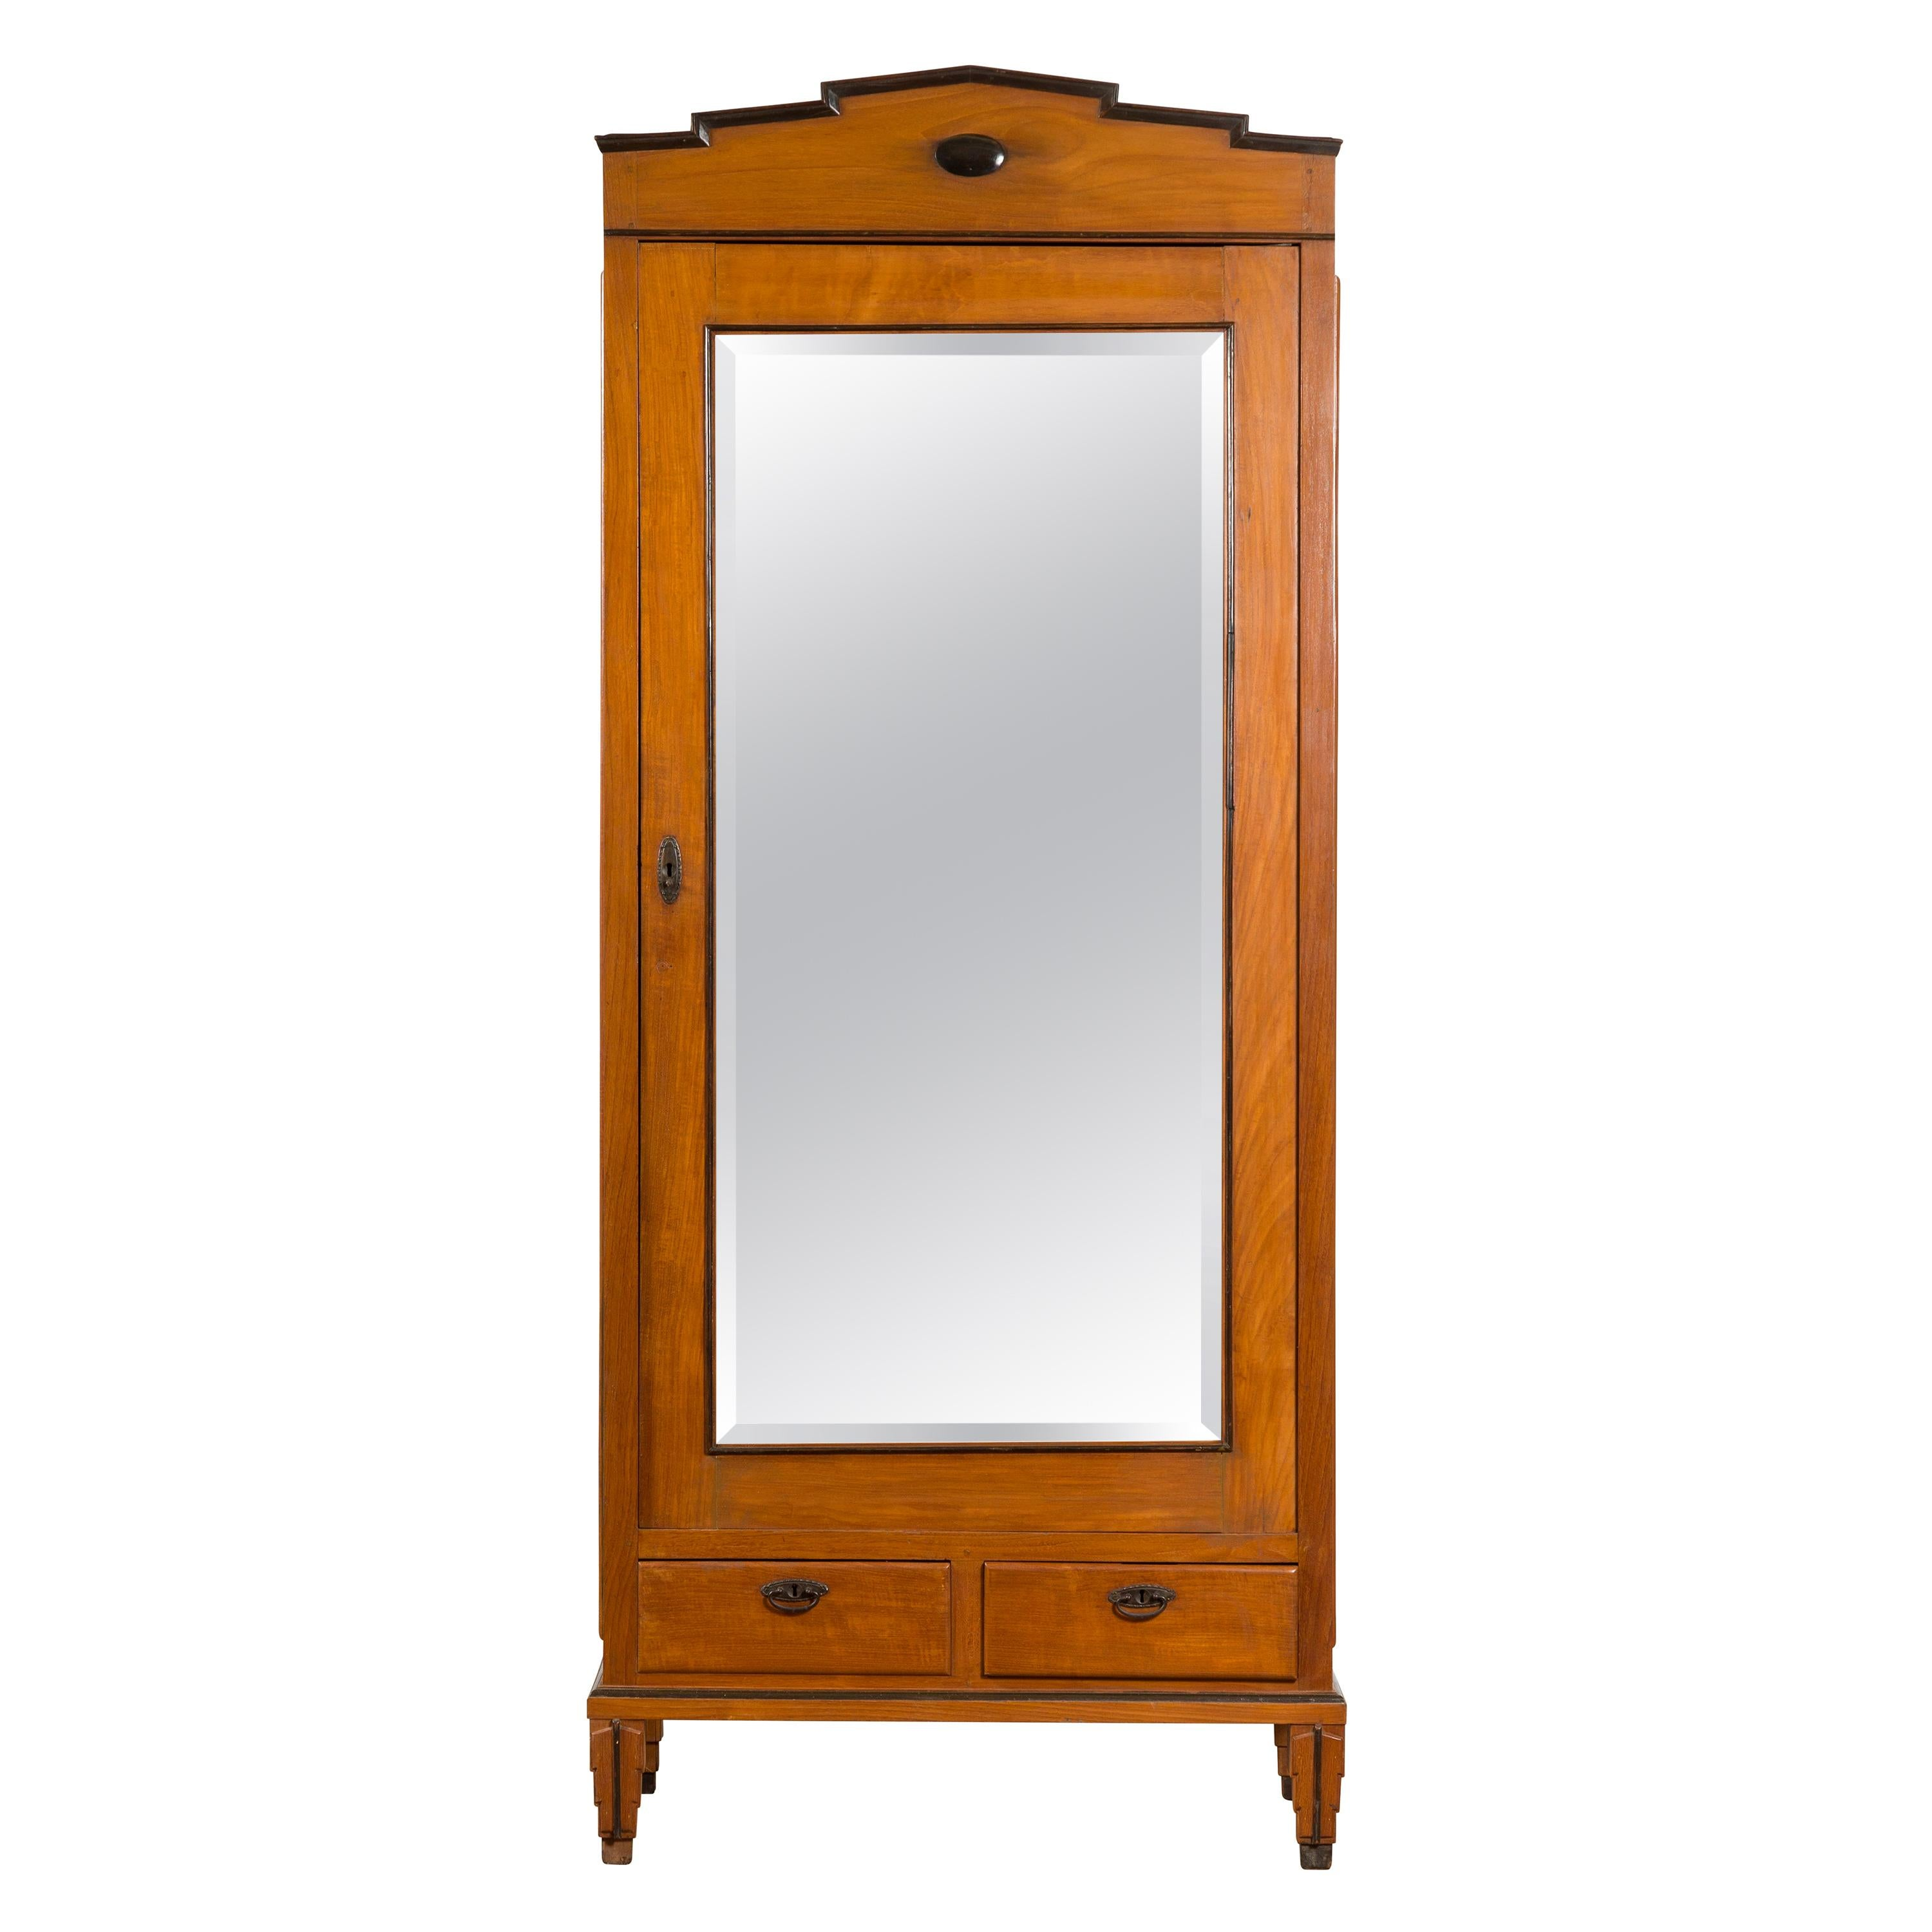 Indonesian Early 20th Century Cabinet with Mirrored Door and Carved Cornice